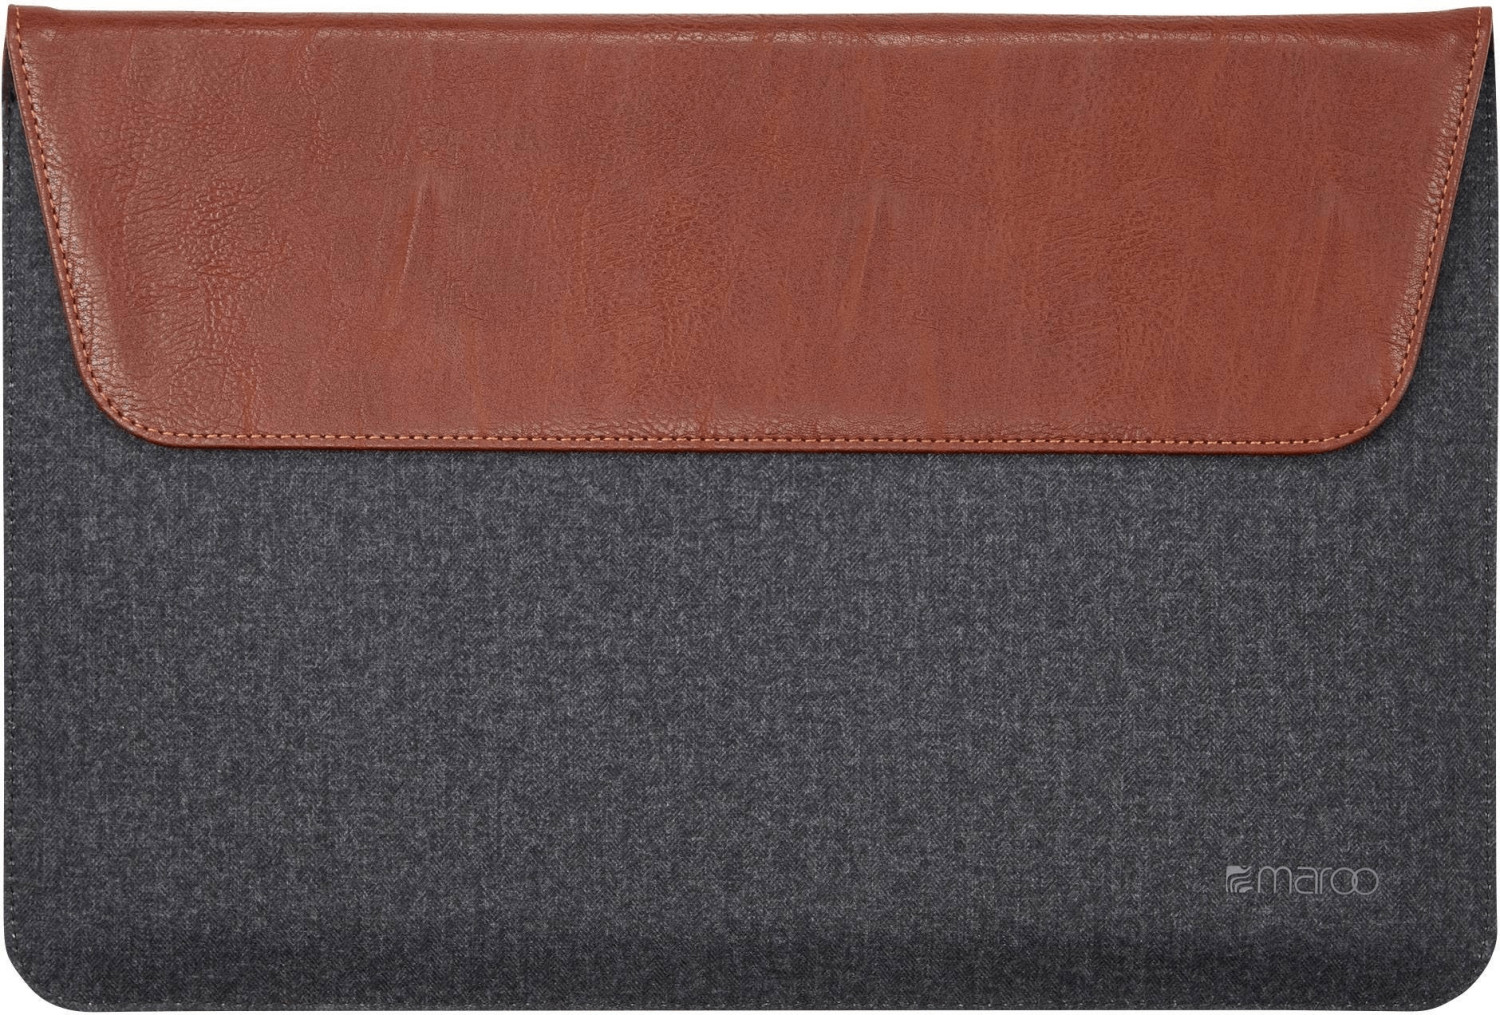 Image of Maroo Leather Sleeve Microsoft Surface Pro 3 brown (MR-MS3307)